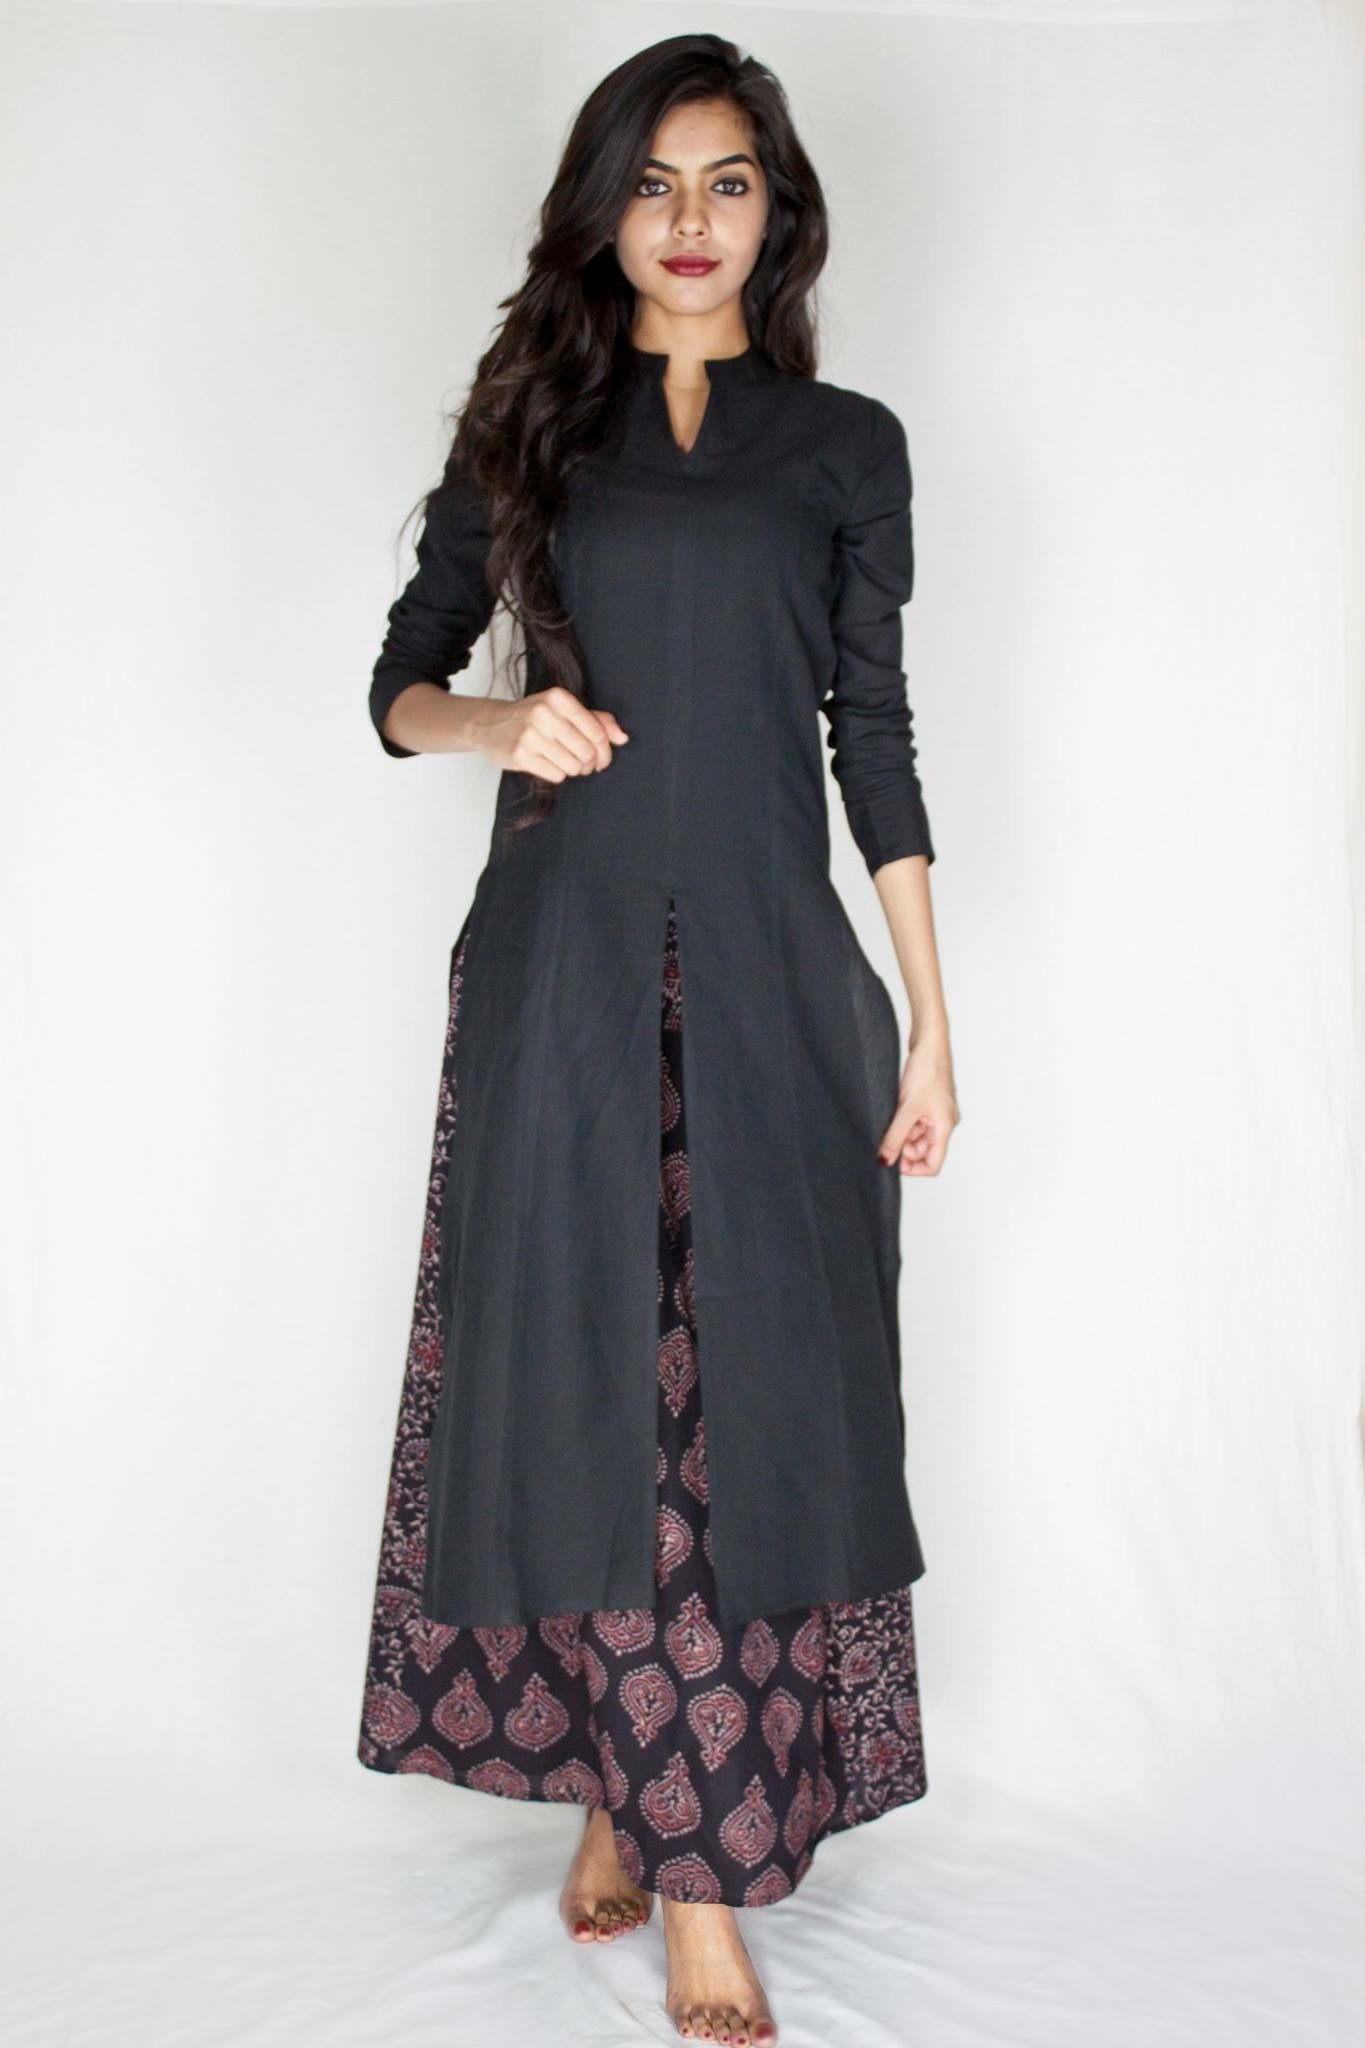 Green dress short in front long in back  How to Wear a Tunic this Autumn  desi  Pinterest  Dresses Kurti